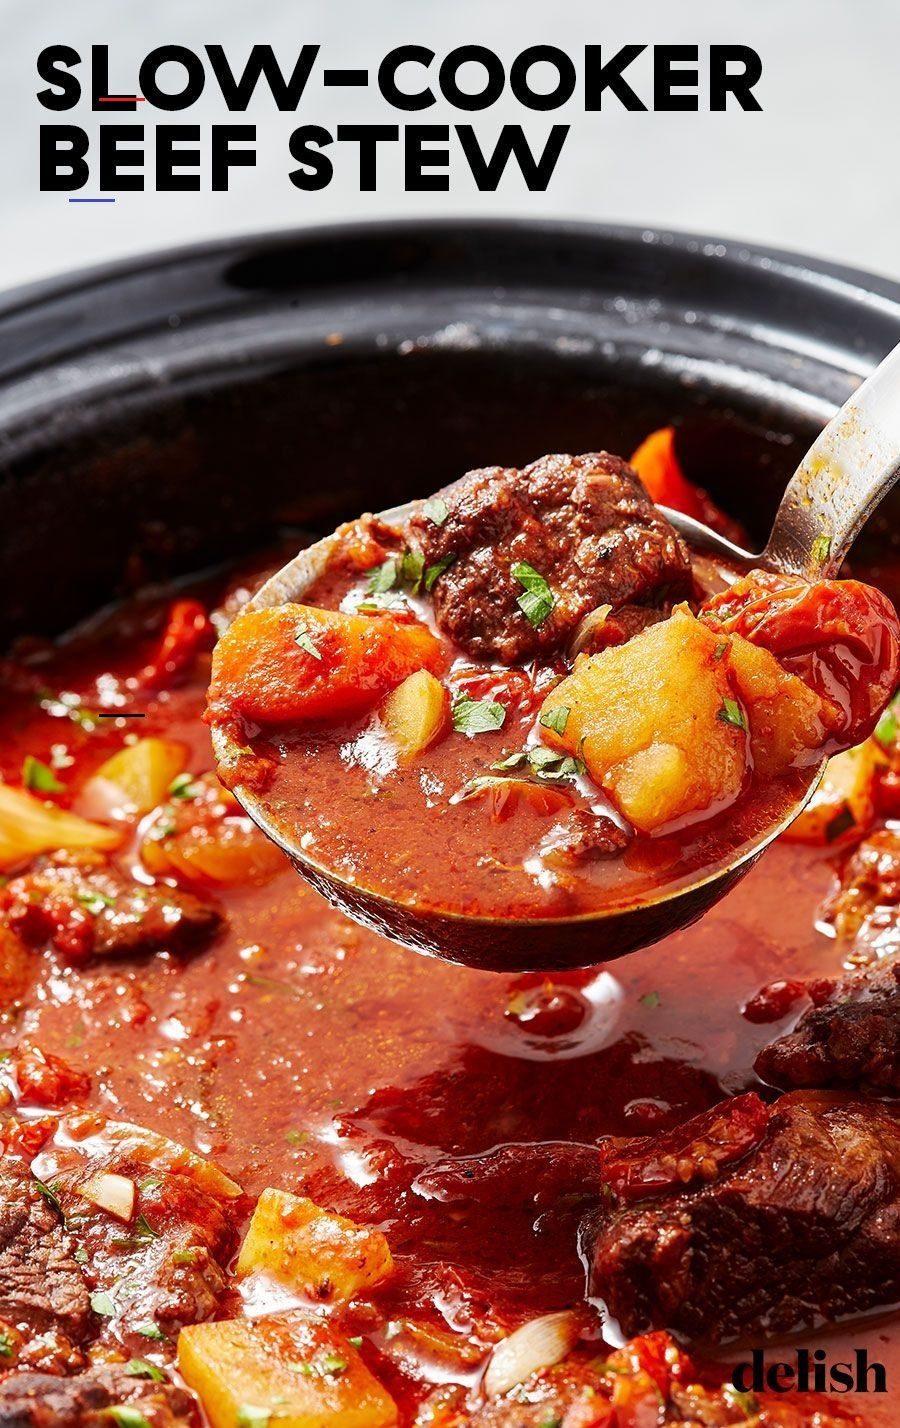 Make Slow Cooker Beef Stew And Everything Will Be Okay Beefstew Looking For An Easy Beef Stew Recipe This Slow Cooker Red Wine Beef En 2020 Guisos Sopas Postres